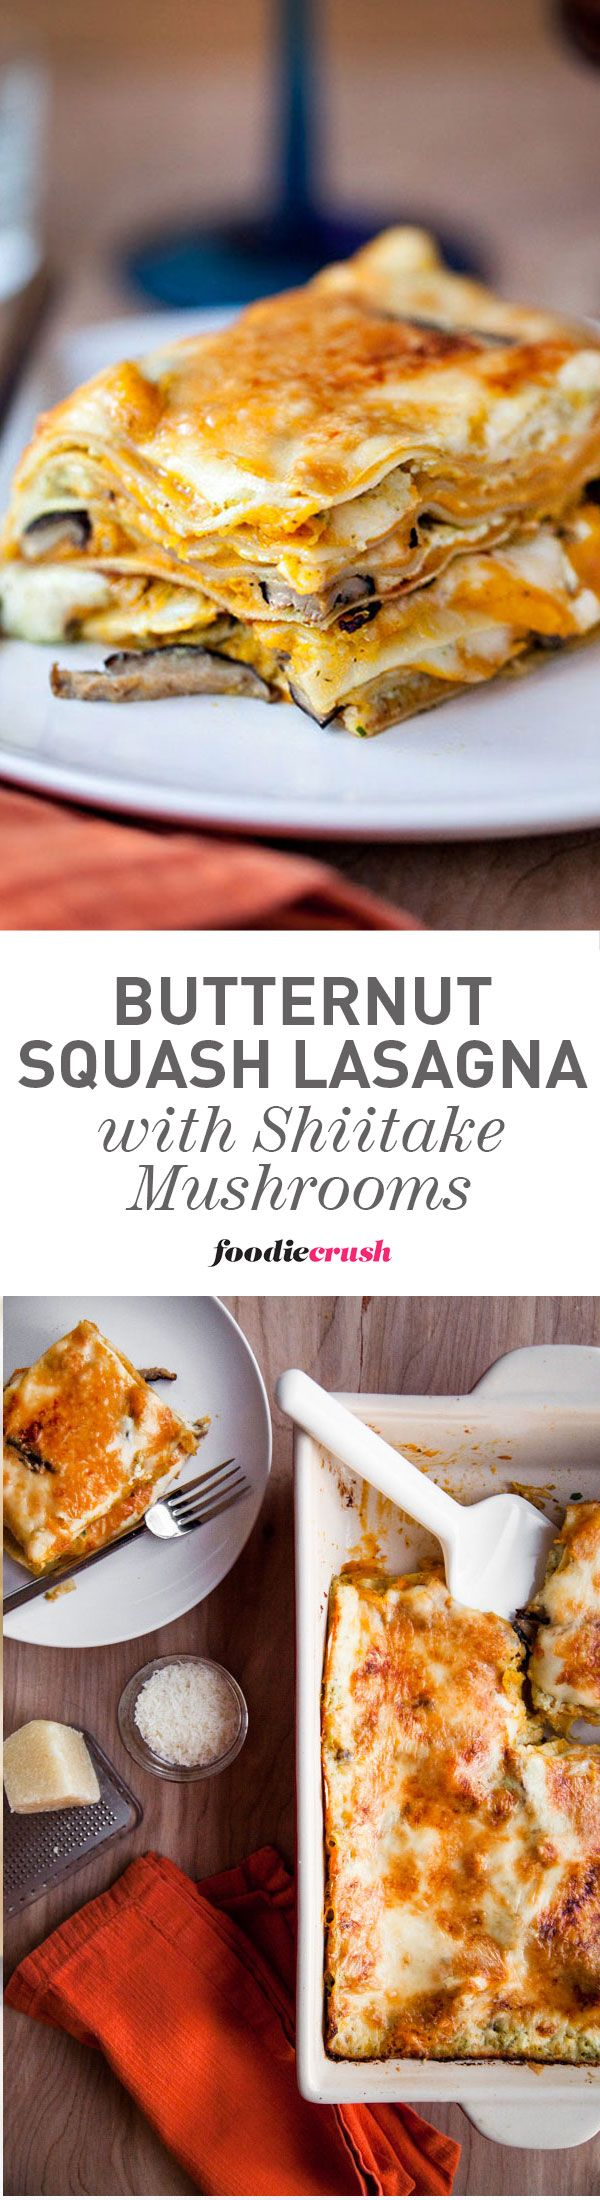 I make this butternut squash vegetarian lasagna every year for Christmas parties and everyone ALWAYS asks for the recipe | foodiecrush.com